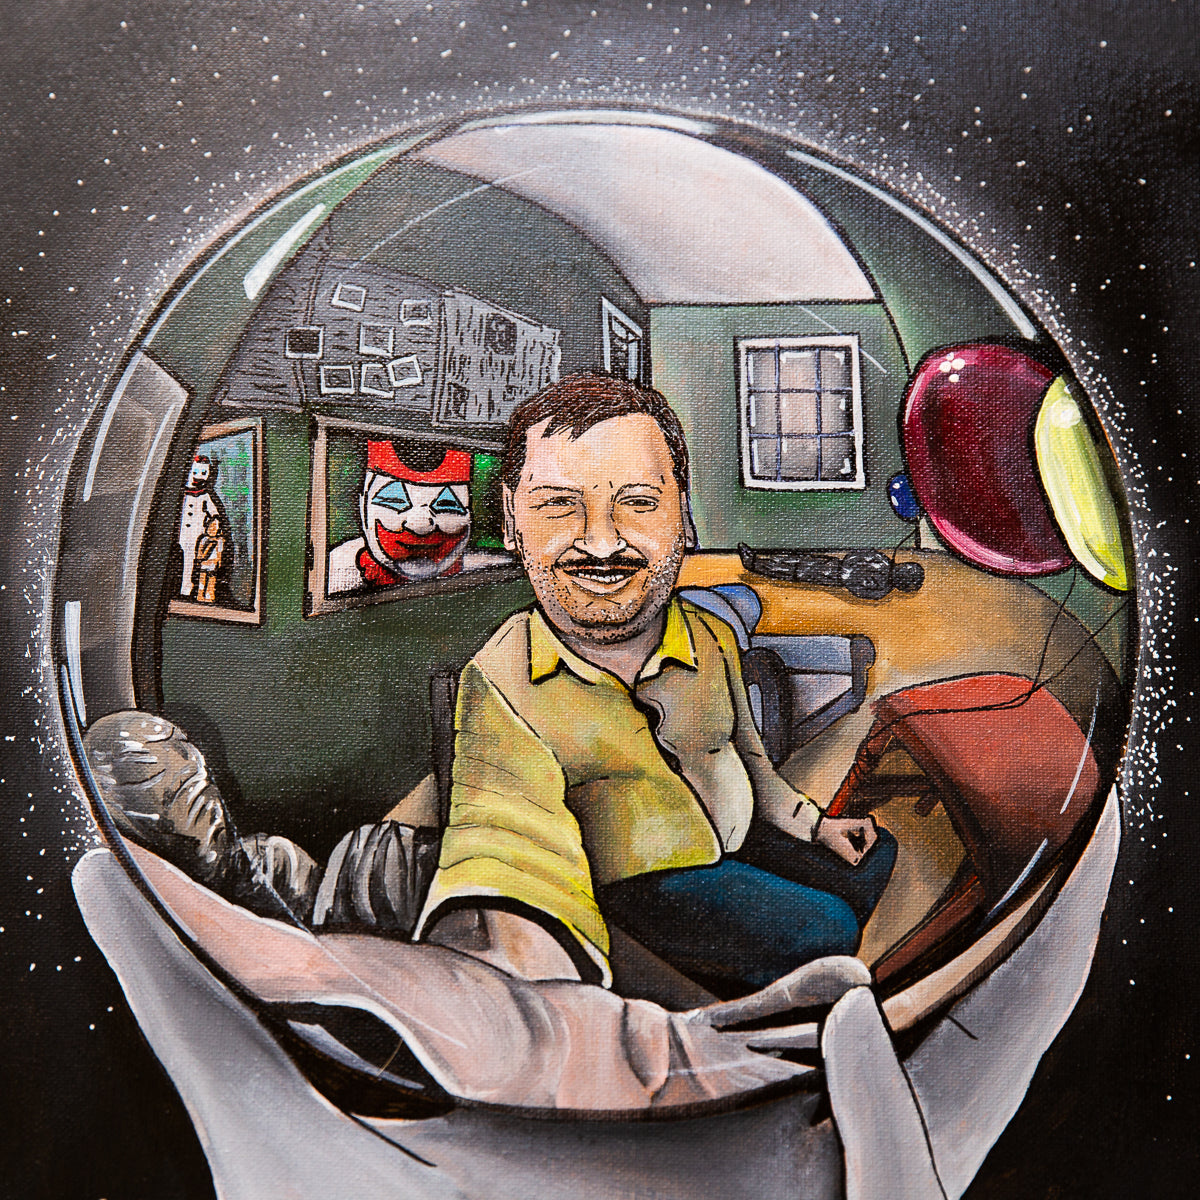 John Wayne Gacy Artwork